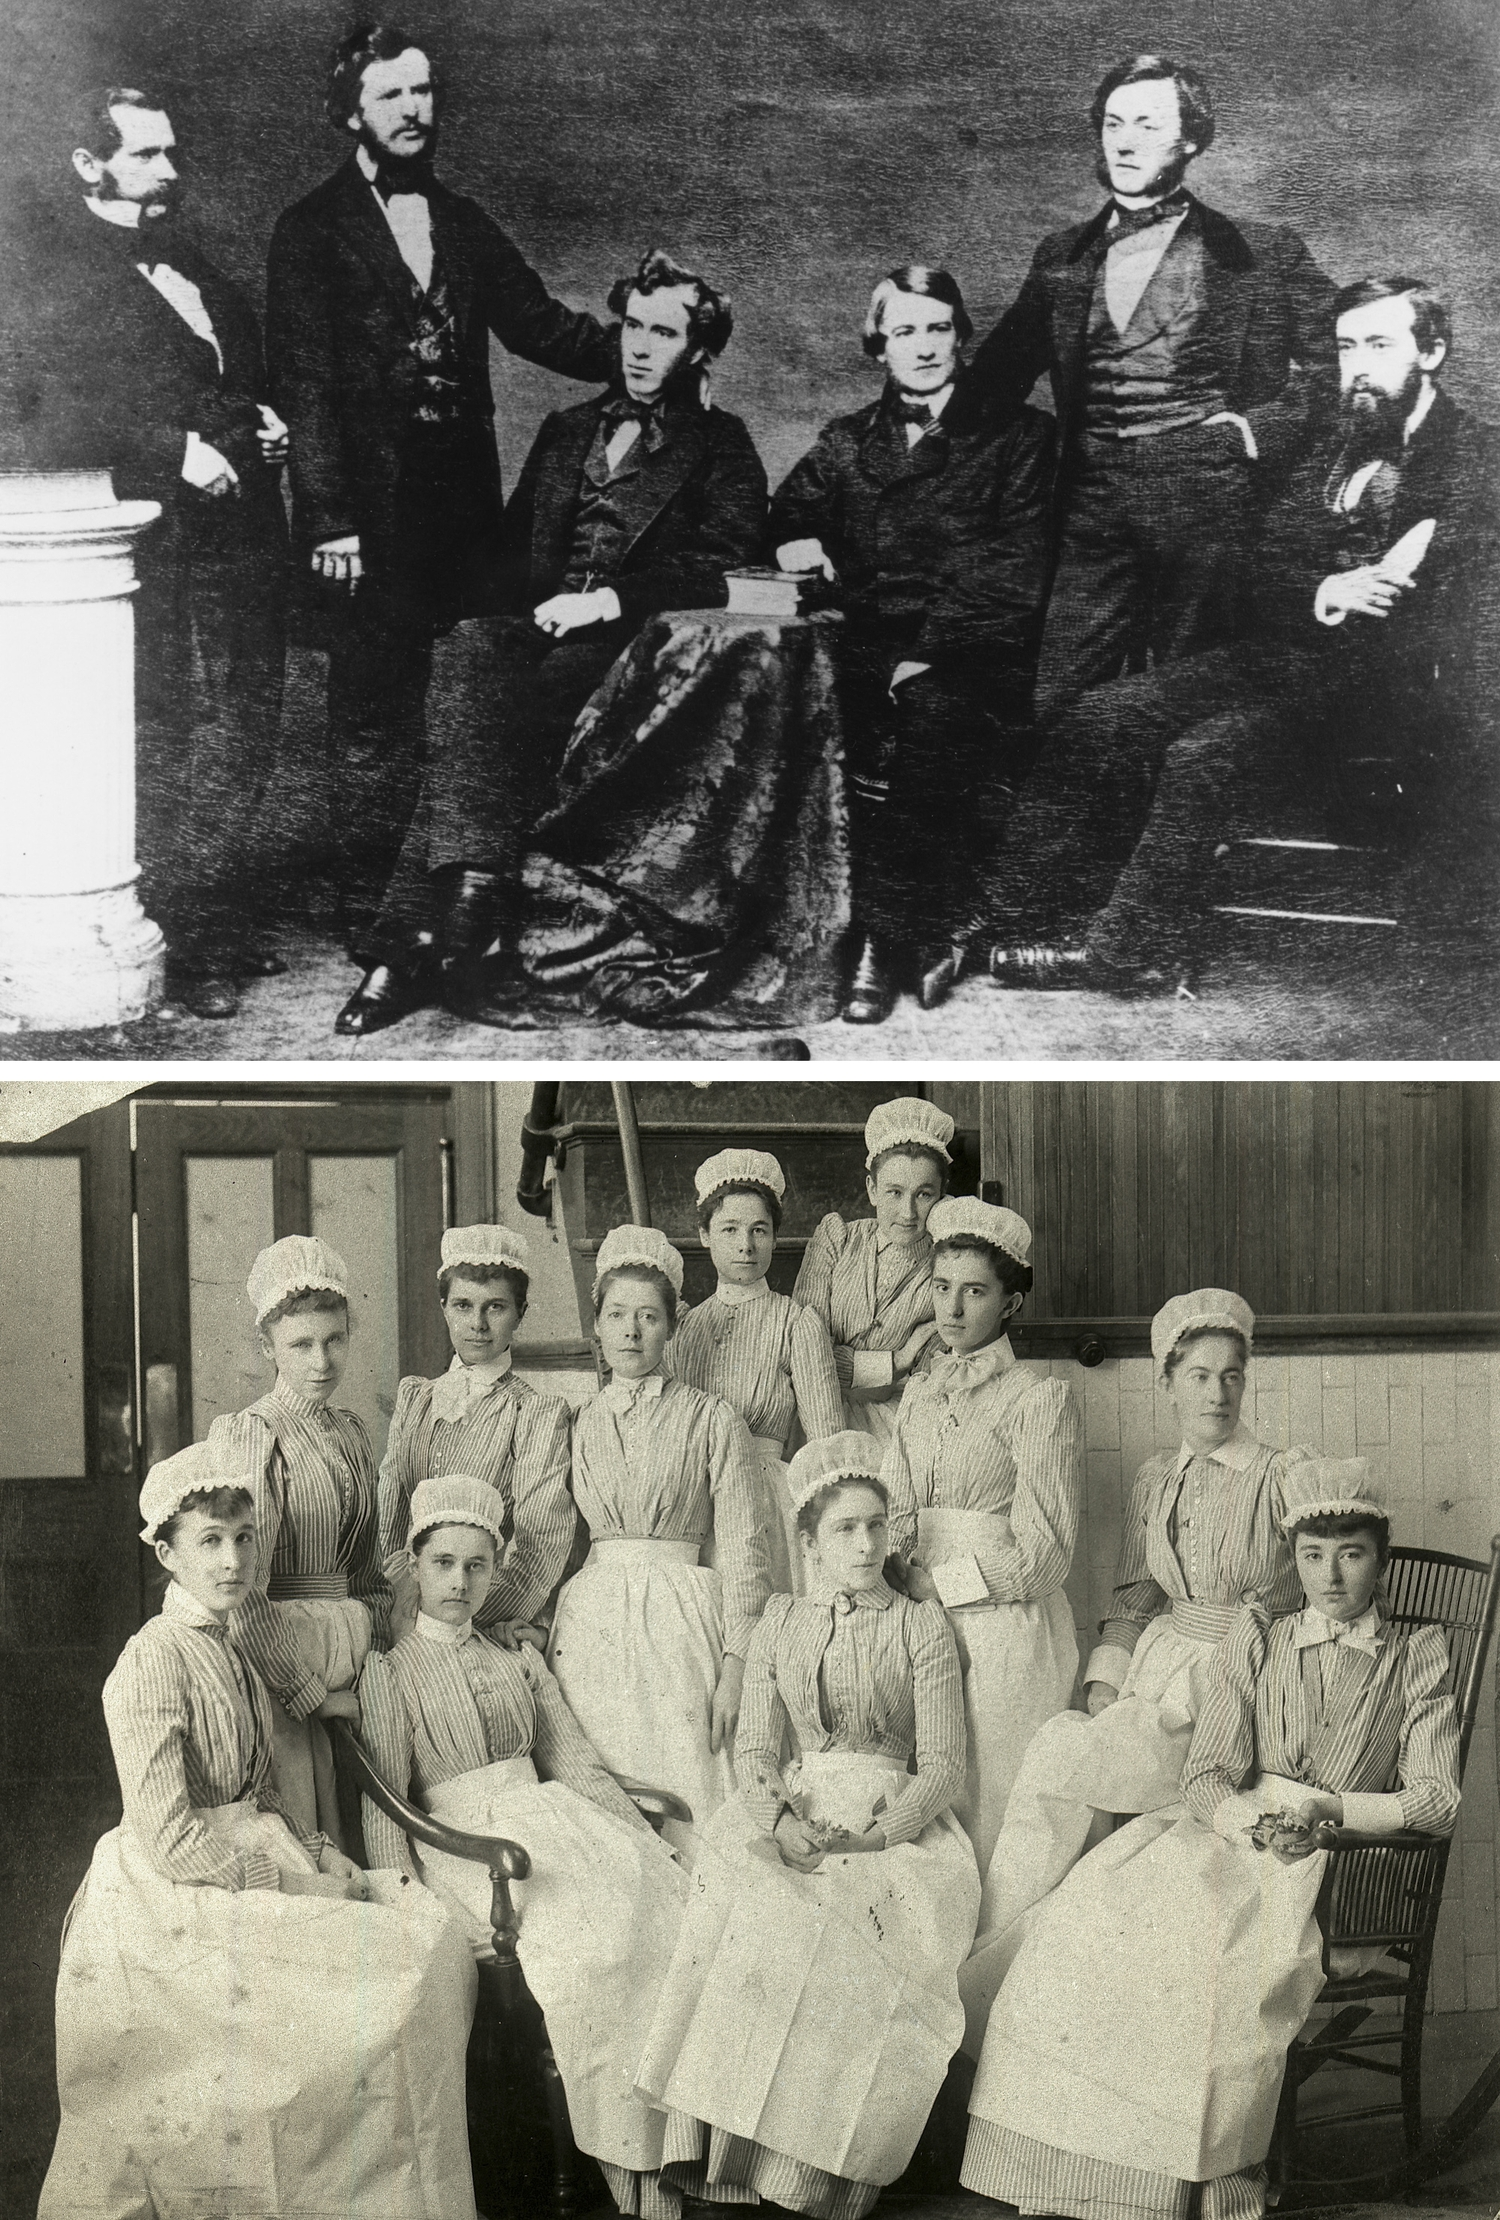 """Bellevue's first class of interns, top, circa 1856. At bottom, America's first professional nursing school opened at Bellevue in 1873. Preferring single, literate, religious women from cultivated families, it rejected most applicants on account of """"bad breeding."""""""